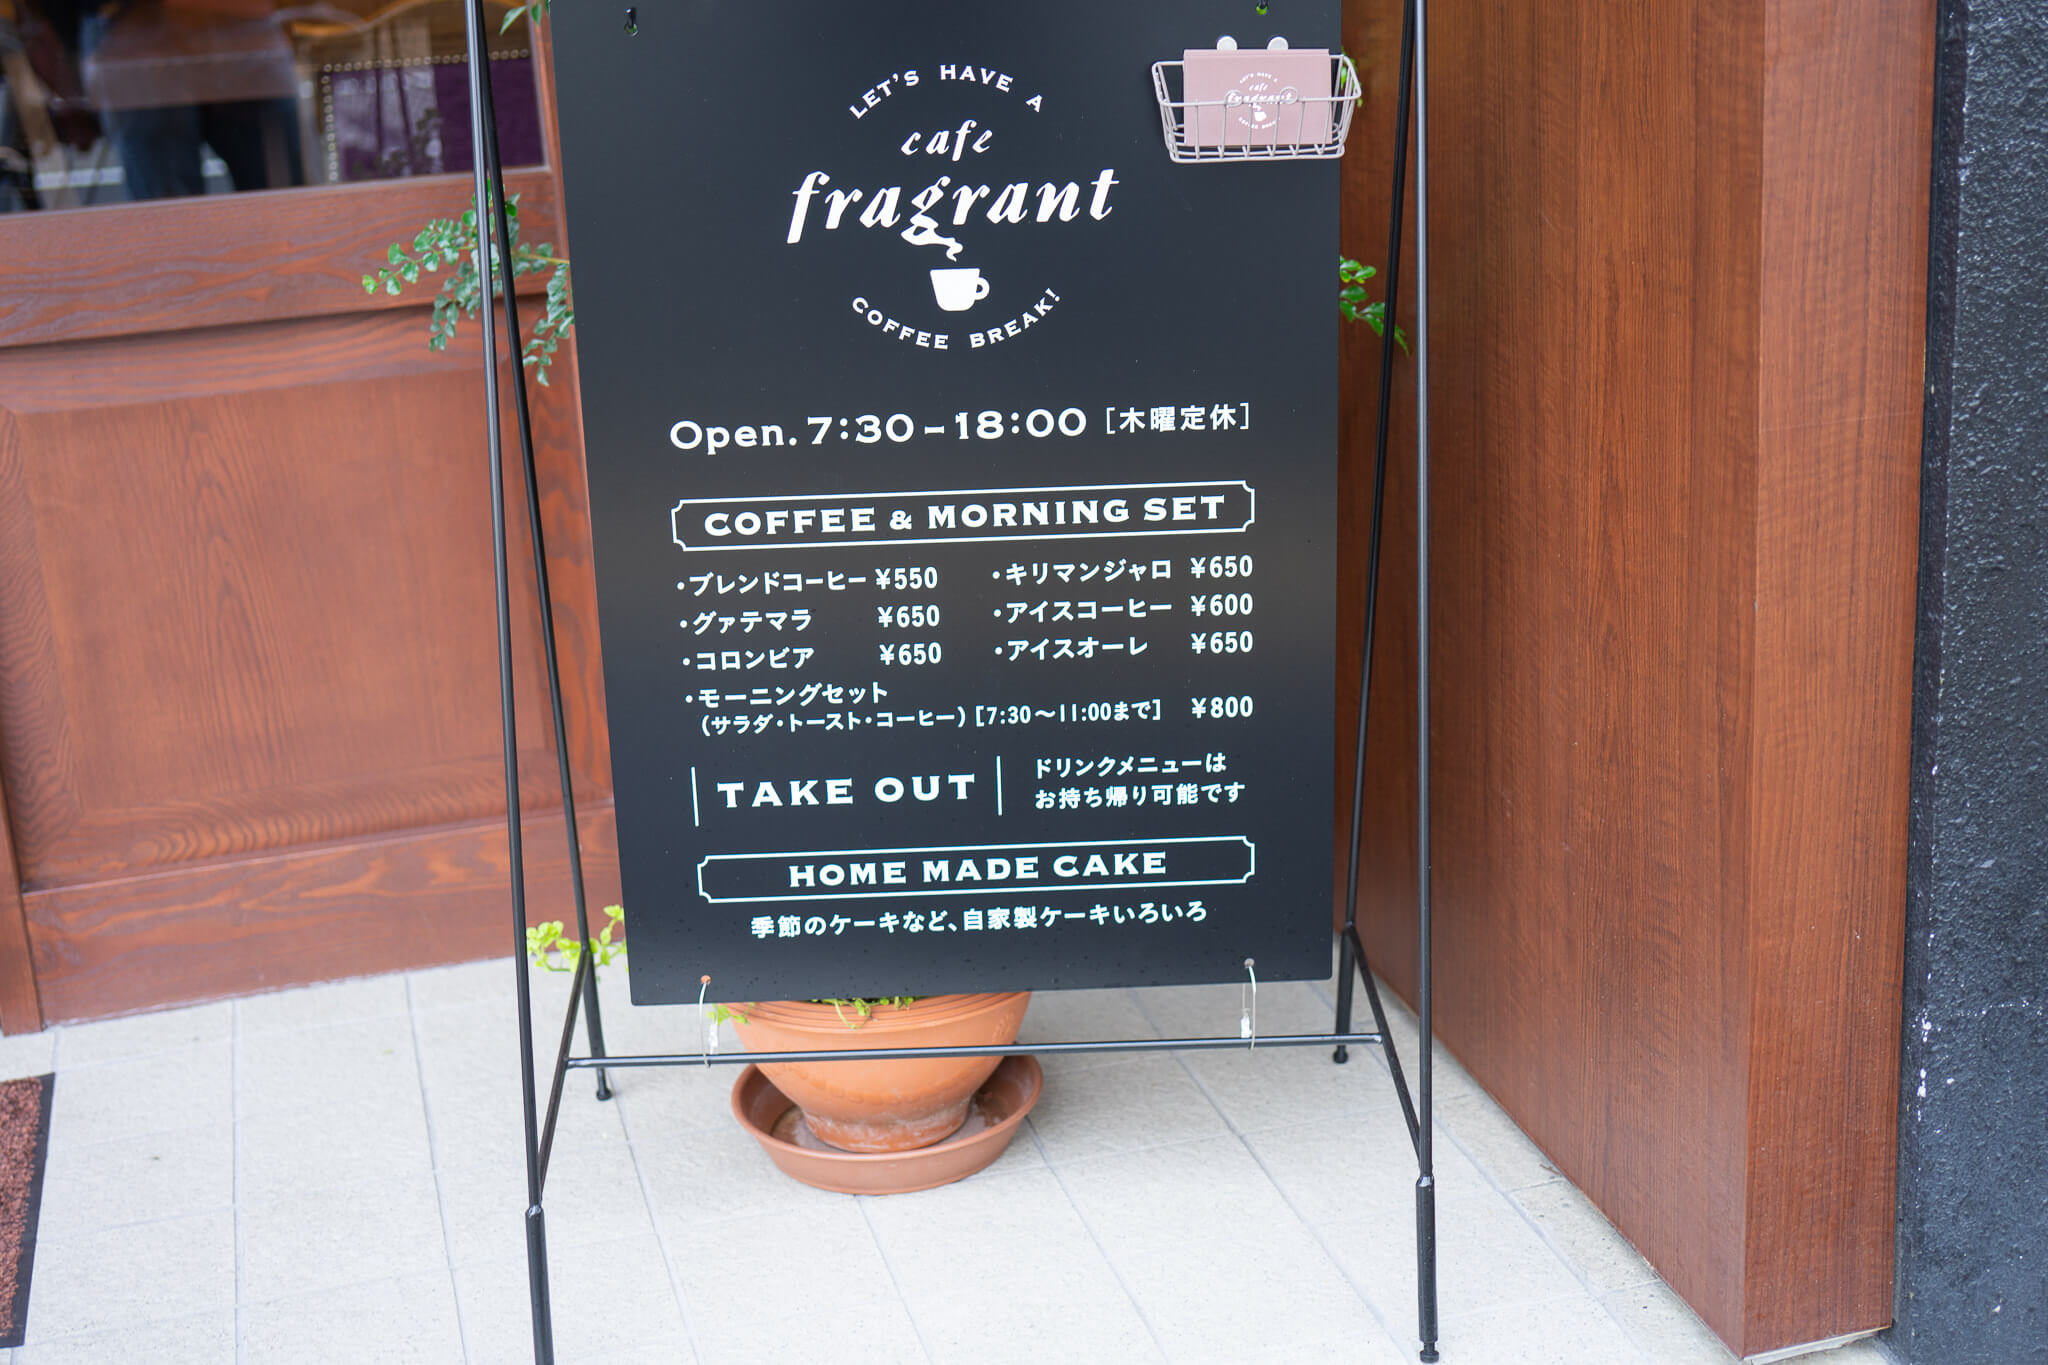 181104 cafe fragrant 1